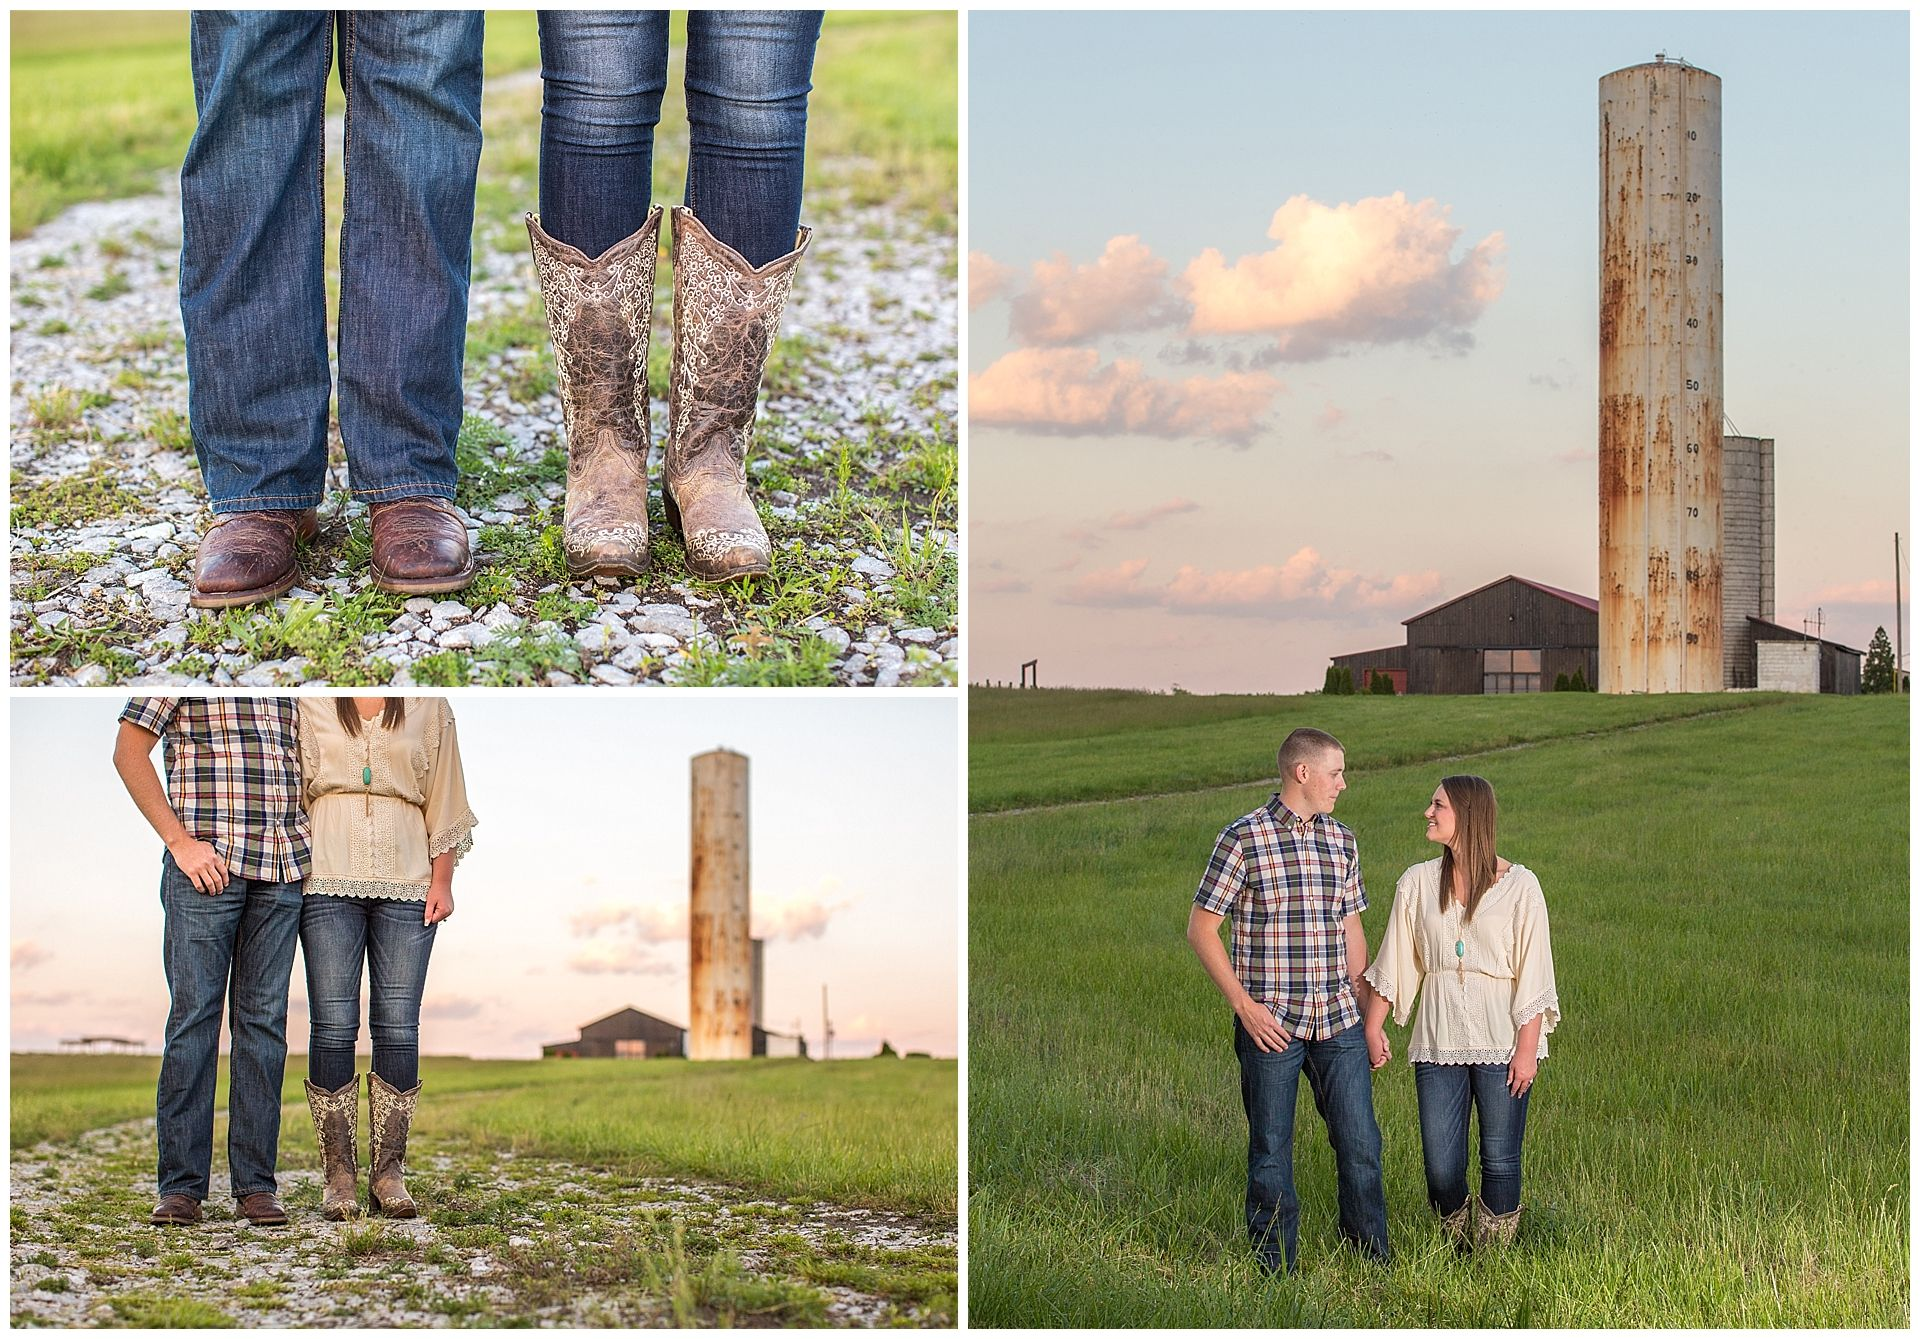 Talon Winery Engagement Session in Lexington, Kentucky ...